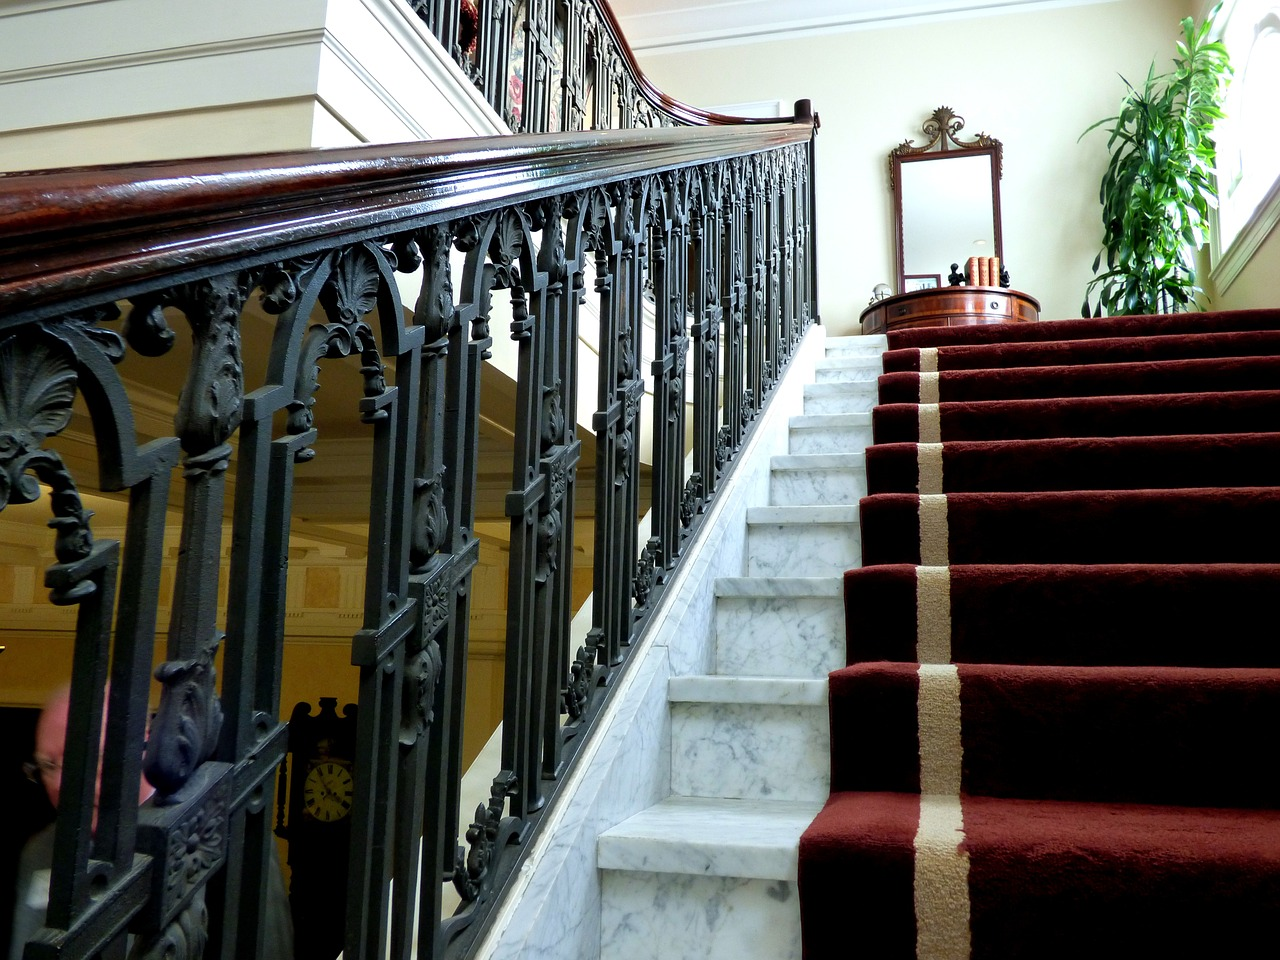 stairs-1054483_1280